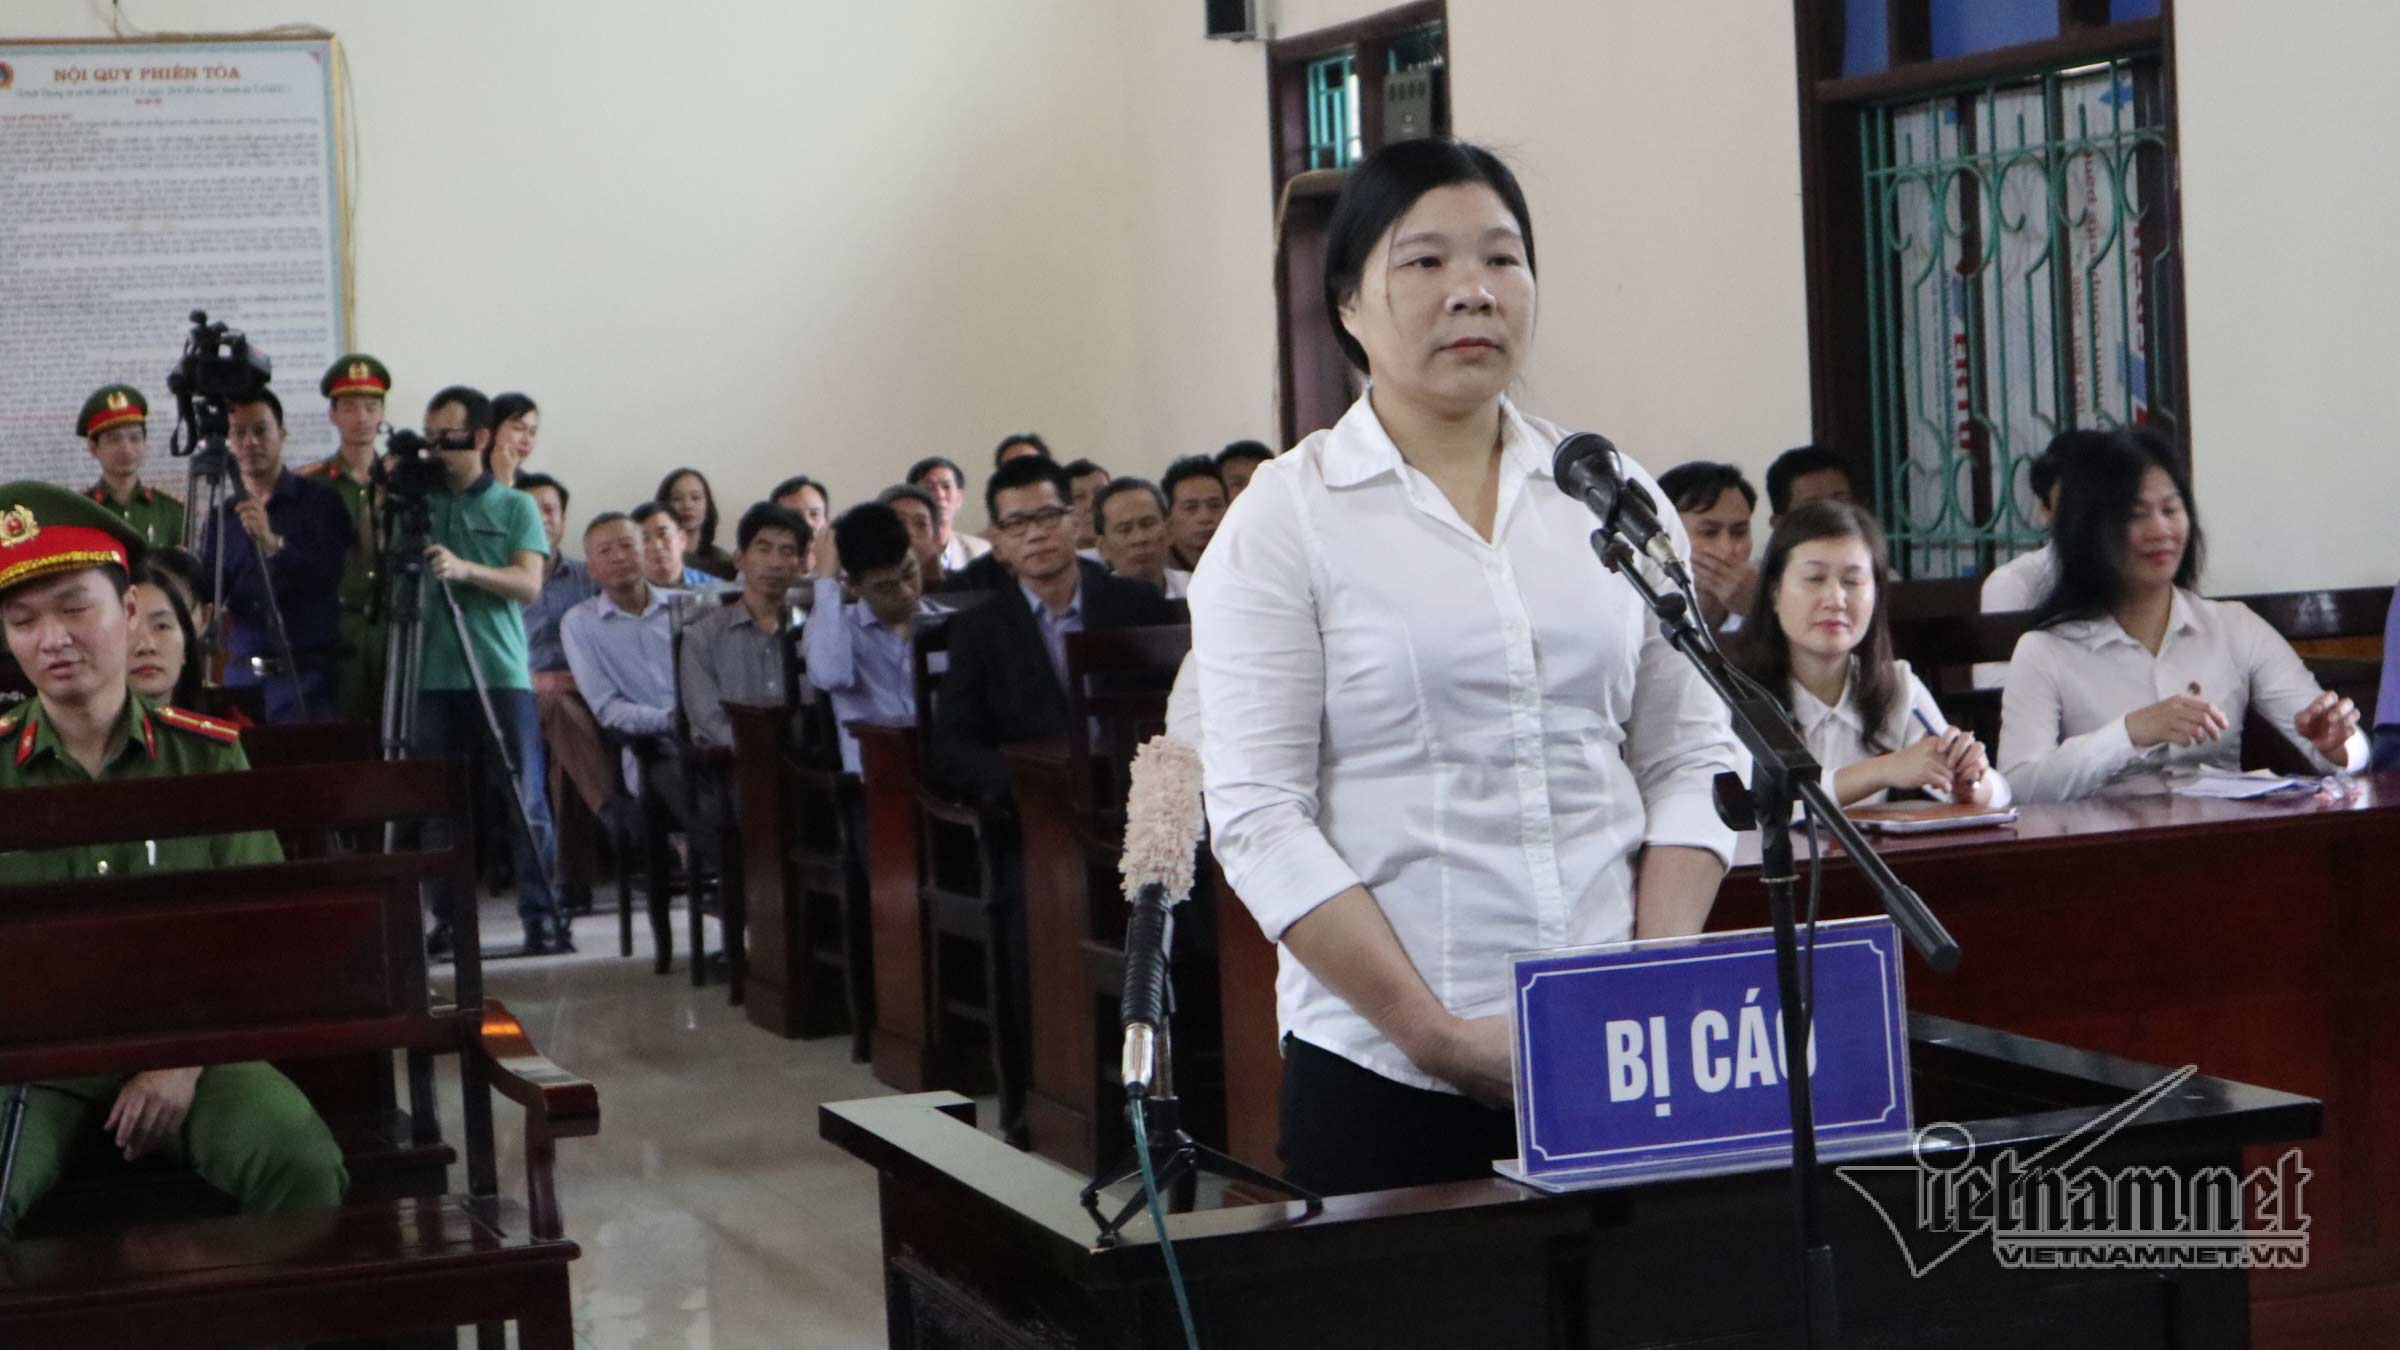 Tran Thi Xuan at trial on April 12, 2018. Source: VietnamNet